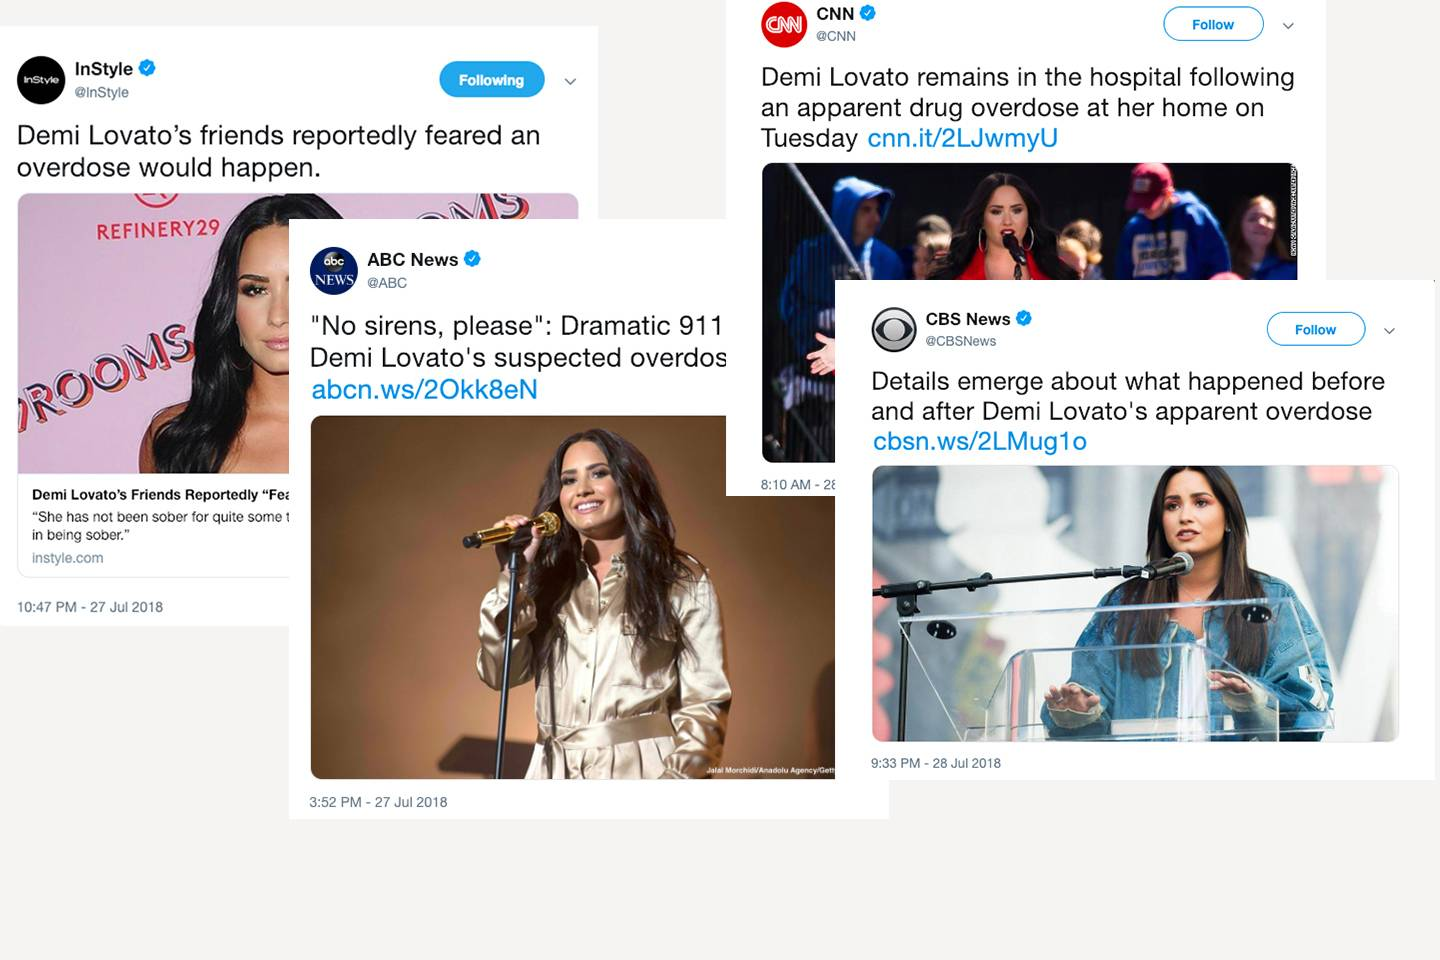 Multiple news tweets referencing Demi Lovato overdose